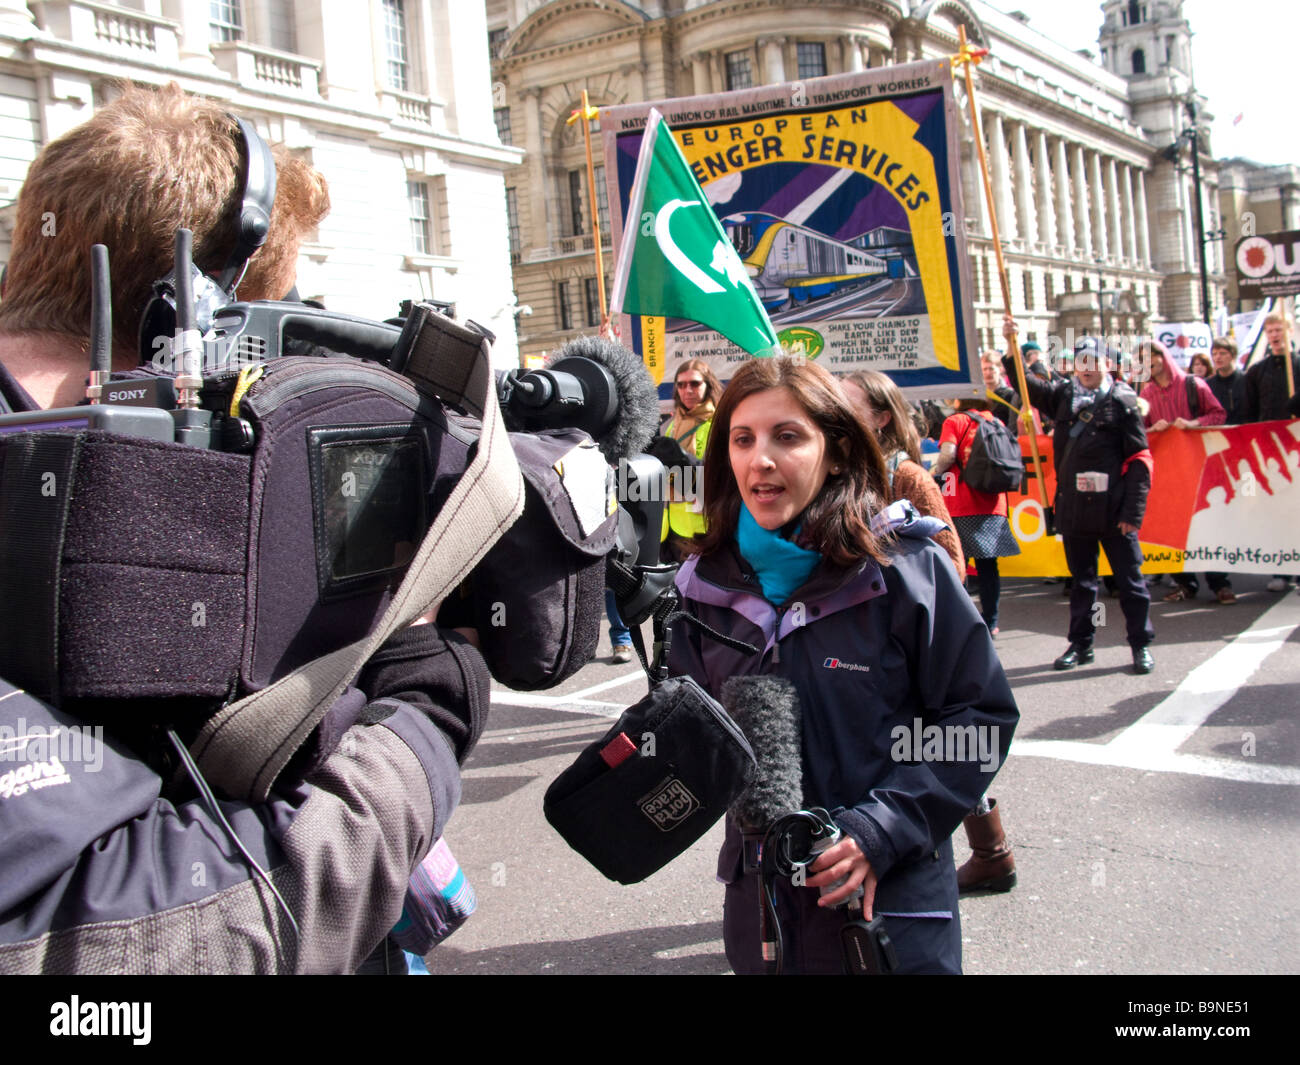 Media reporting on G20 protest march in central London, 28/03/09 - Stock Image